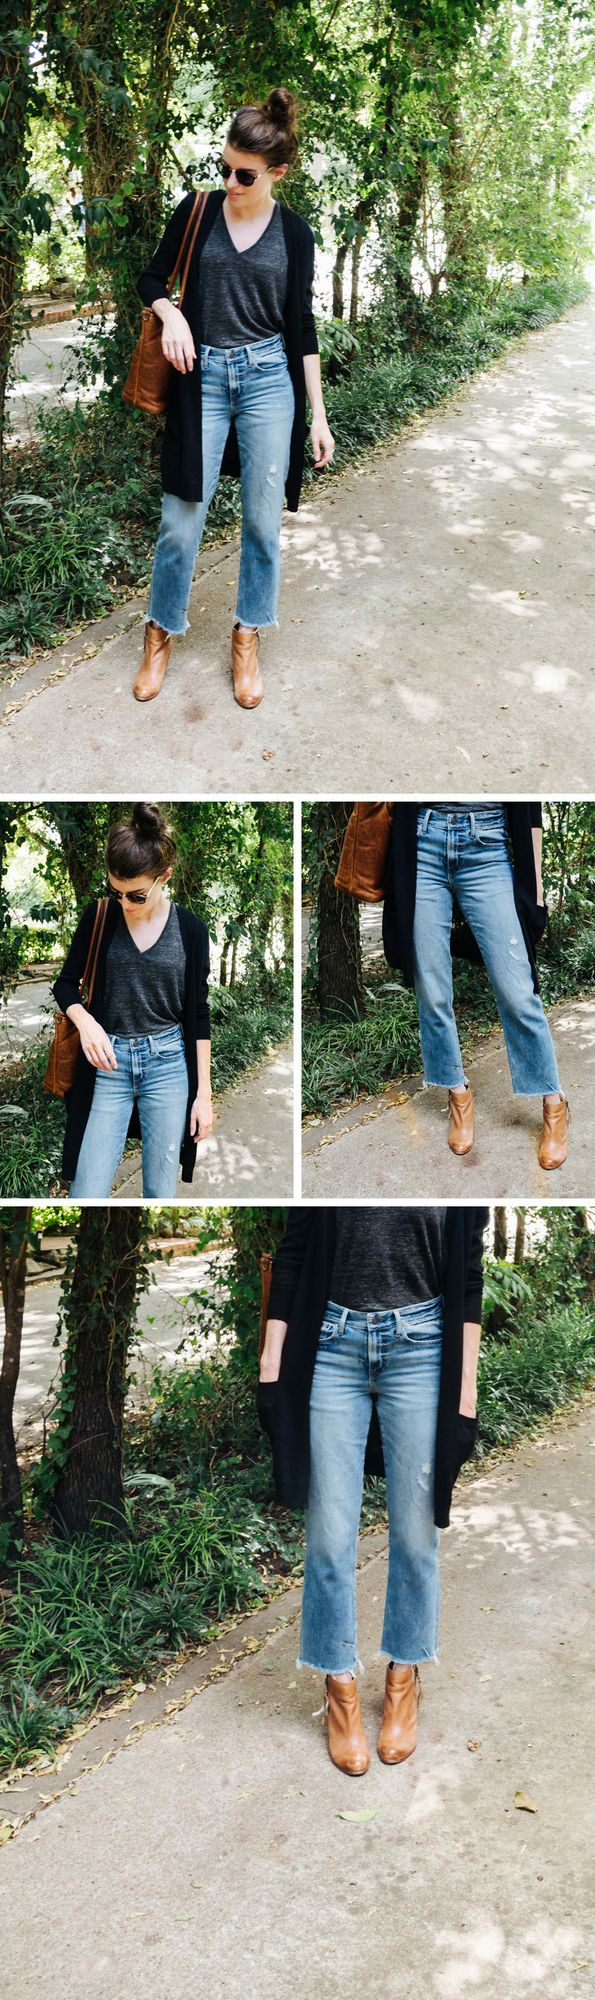 a196eaaf0f8f SOURCES: Tee by Everlane (old, similar) / Cardigan by Nordstrom / Bag  gifted by ONA / Shoes by Sam Edelman (old, similar) / Sunnies by Madewell /  Denim ...